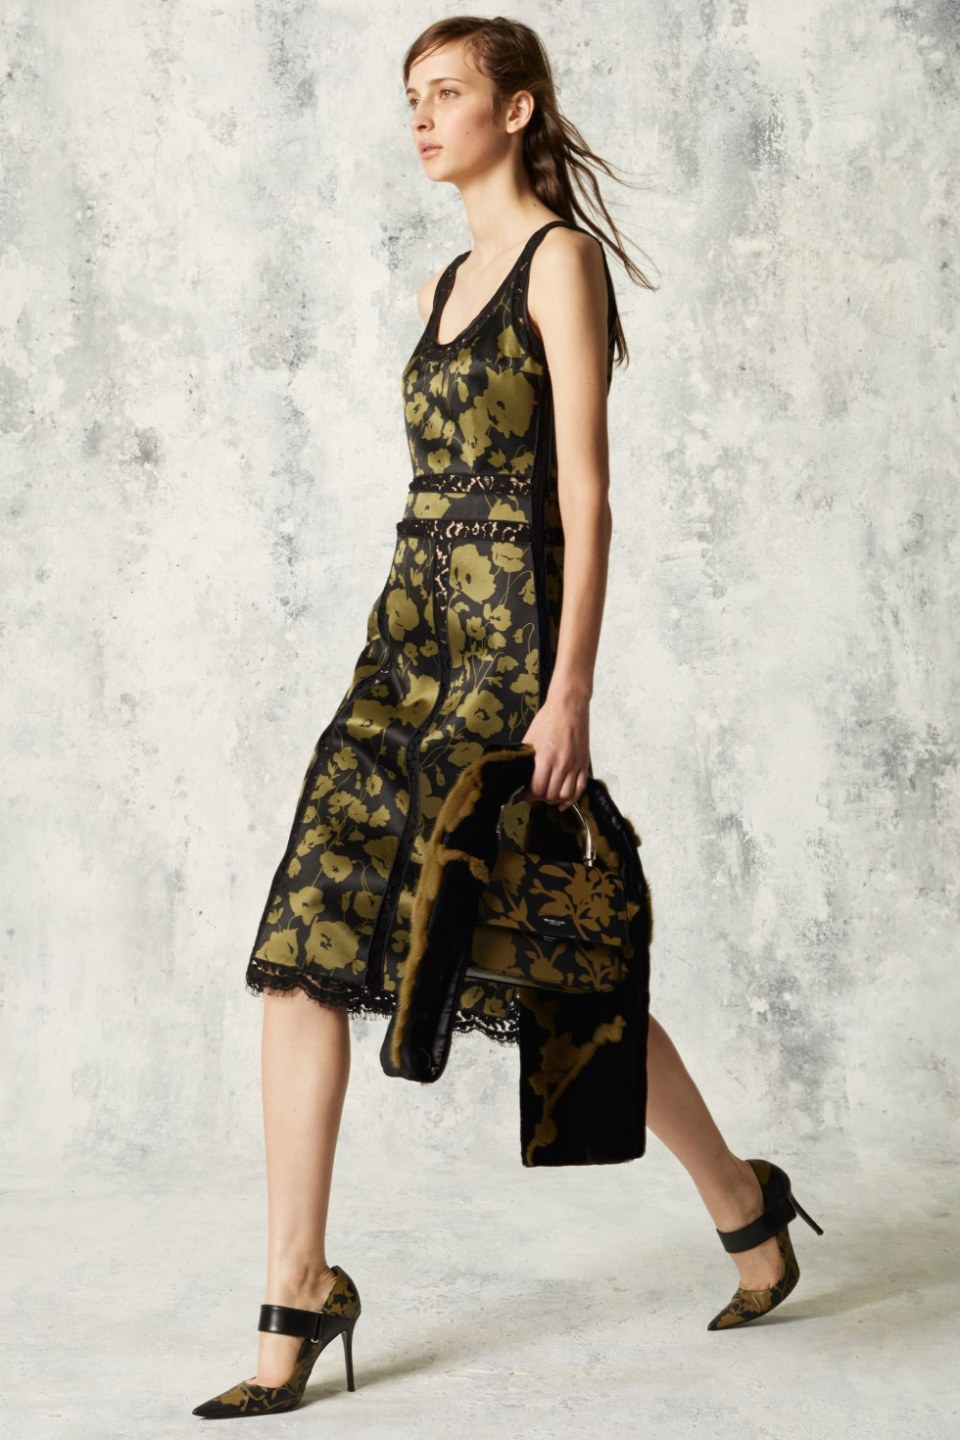 michael-kors-pre-fall-2016-lookbook-5